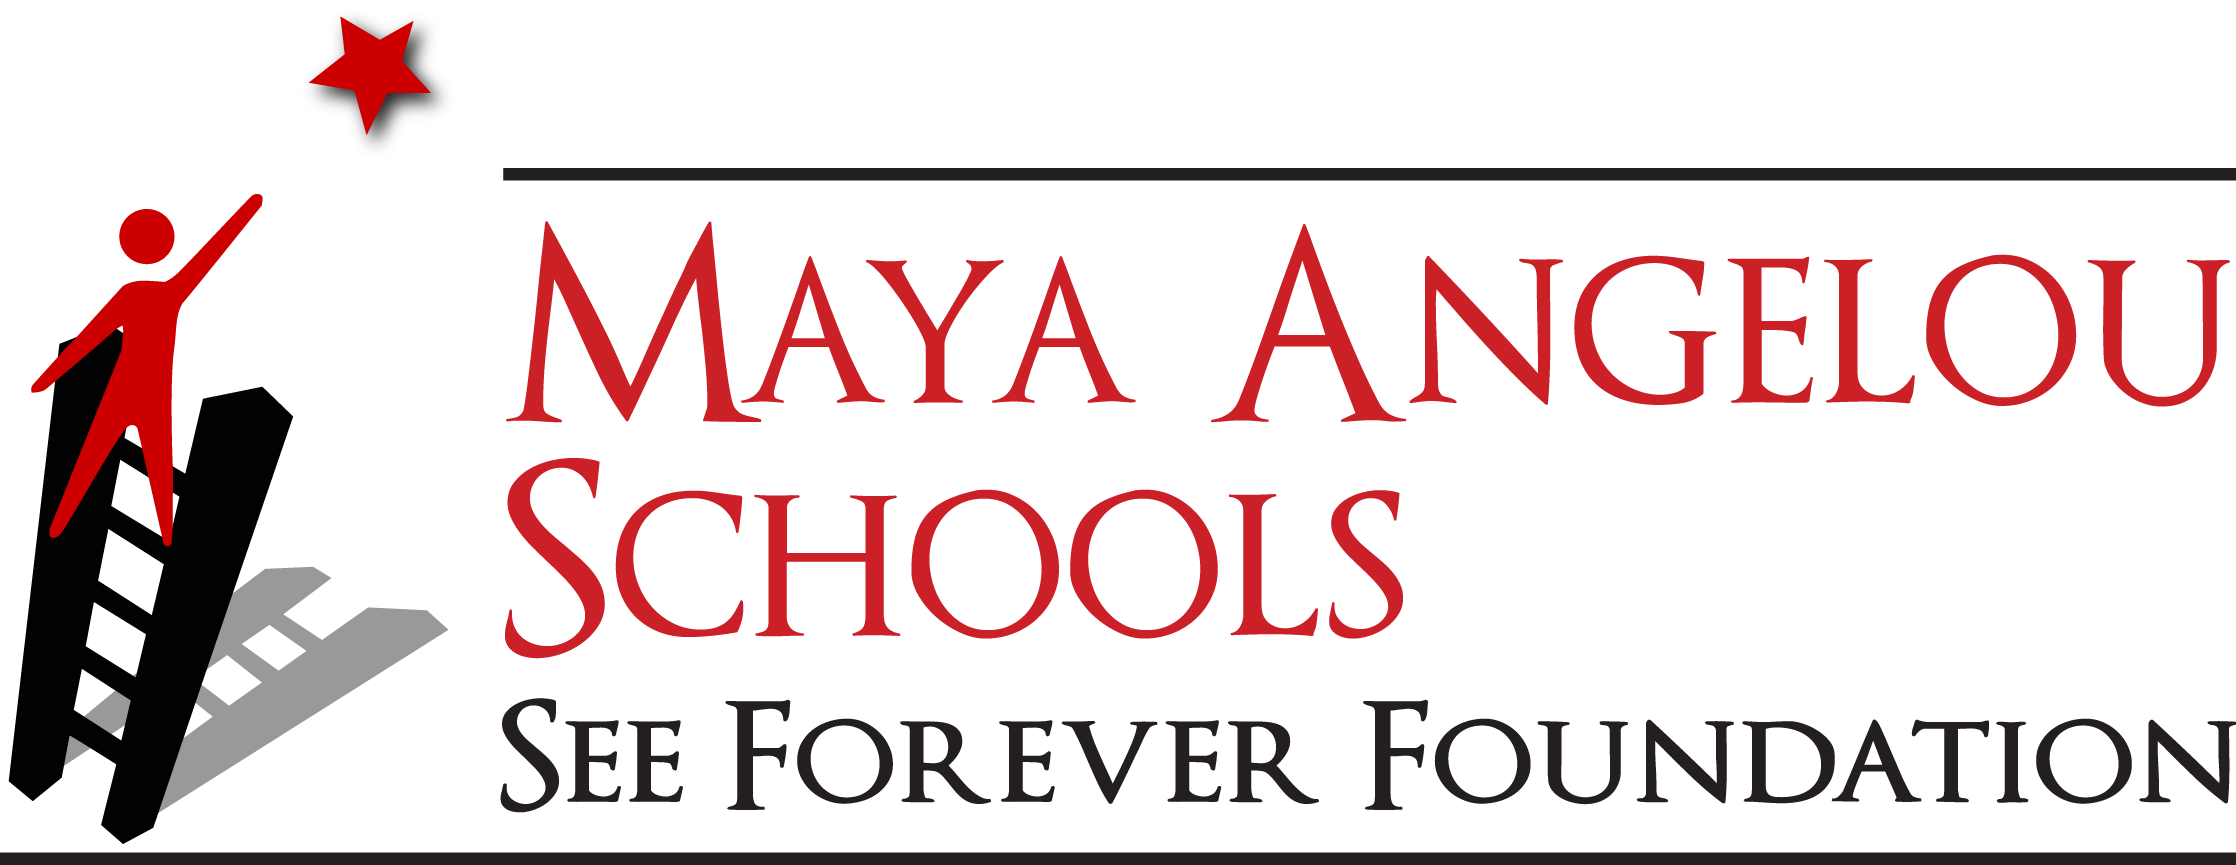 Maya Angelou Public Charter Schools - See Forever Foundation |